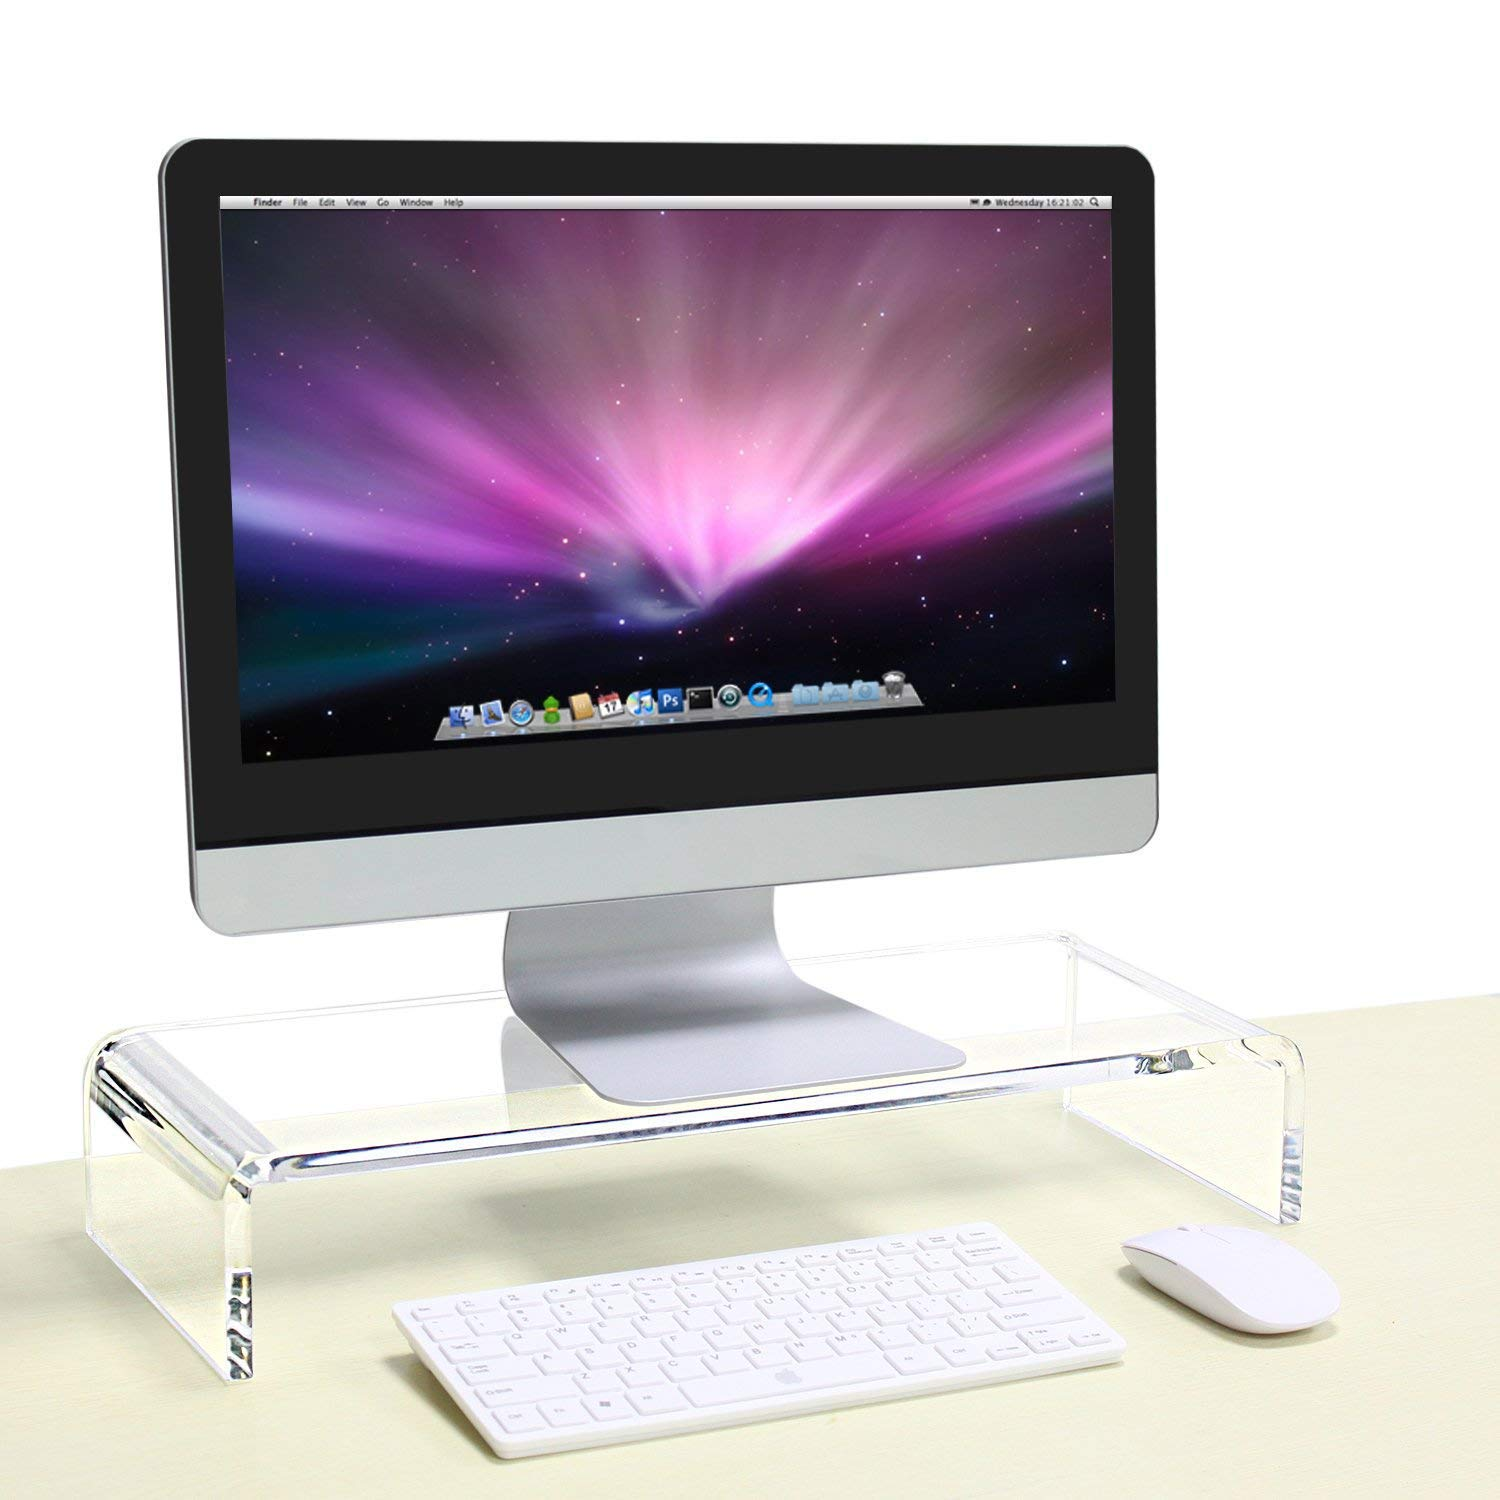 Niubee (Set of 2) Heavy Duty Acrylic Monitor Riser Stand, Clear Plastic Computer Stand for Home Office Shop, Desktop Riser Stand for Computer Laptop Printer TV Screen Keyboata